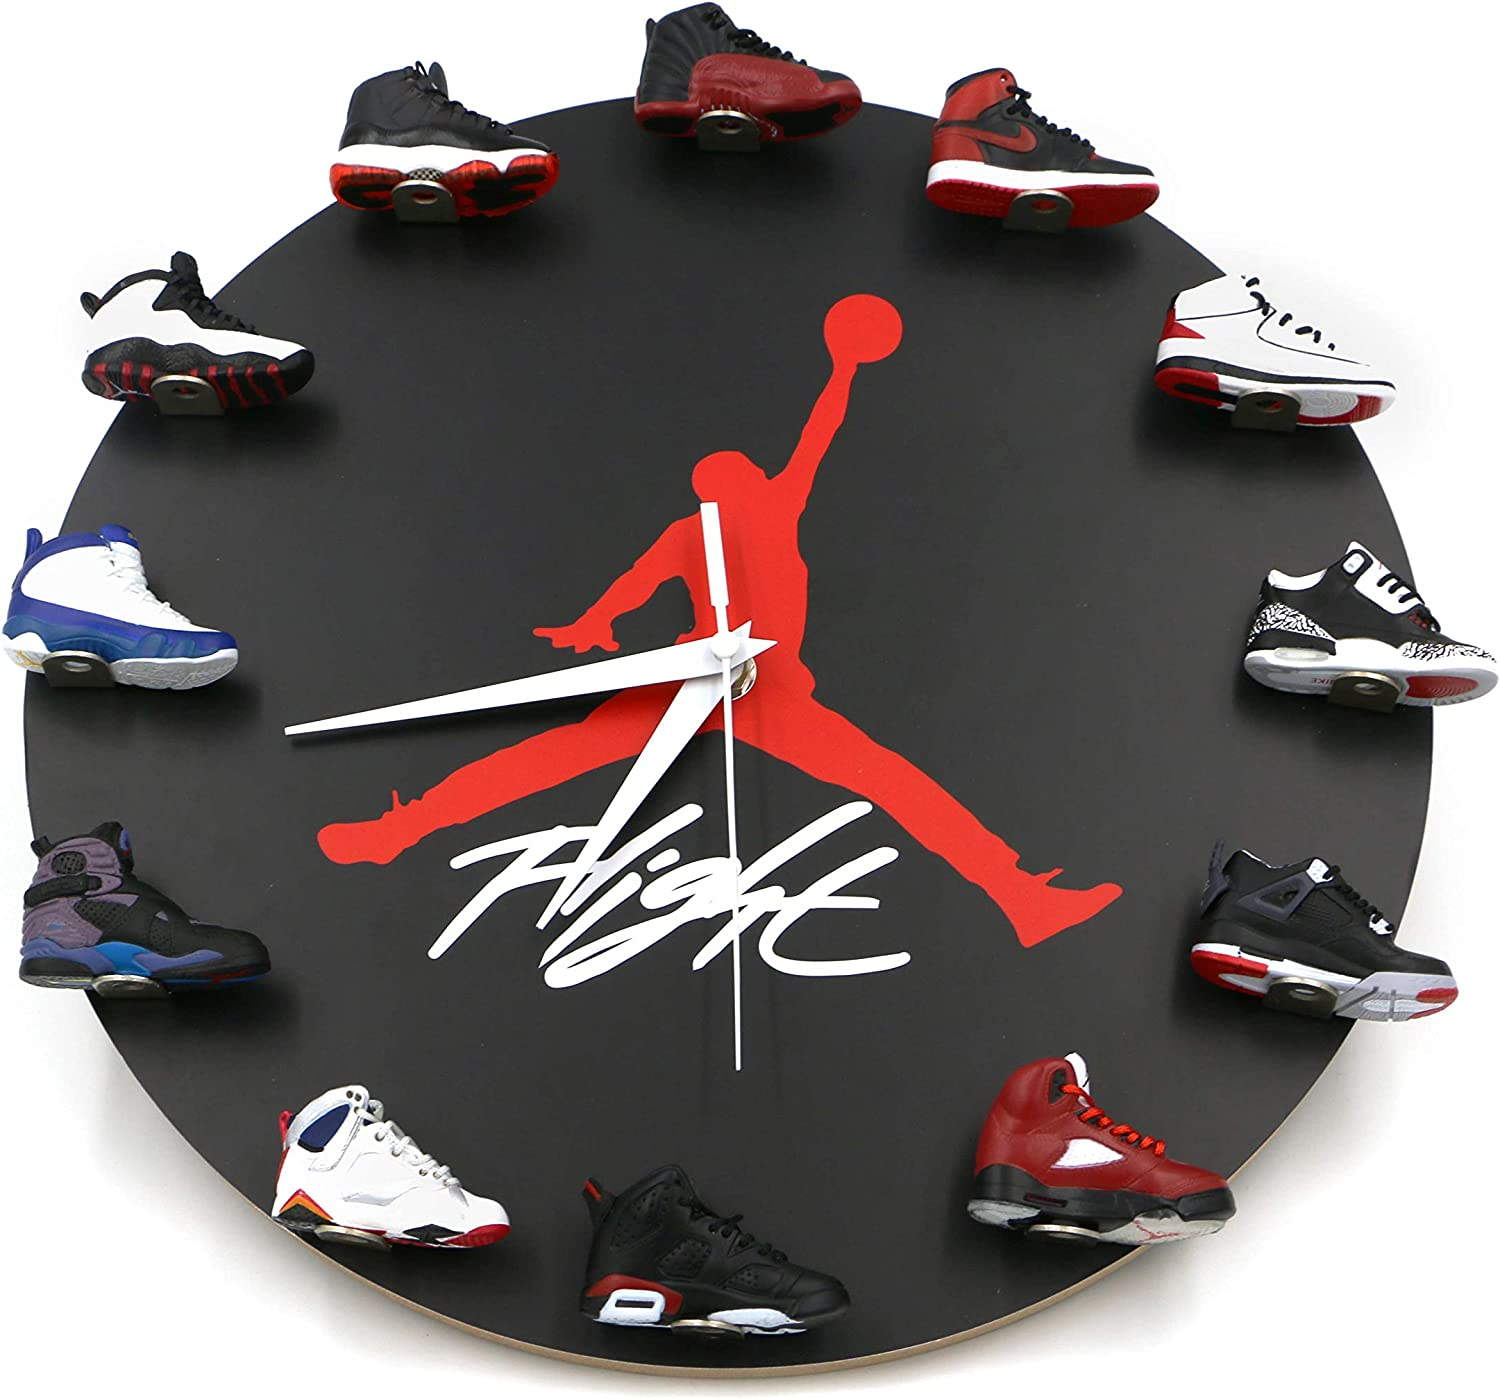 Amazon Com Relicsjp Air Jordan Wall Clock With 3d Mini Sneakers Sneakerhead Style Decor Air Jordan 1 To 12 Clock Gift For Hypebeasts Kitchen Dining